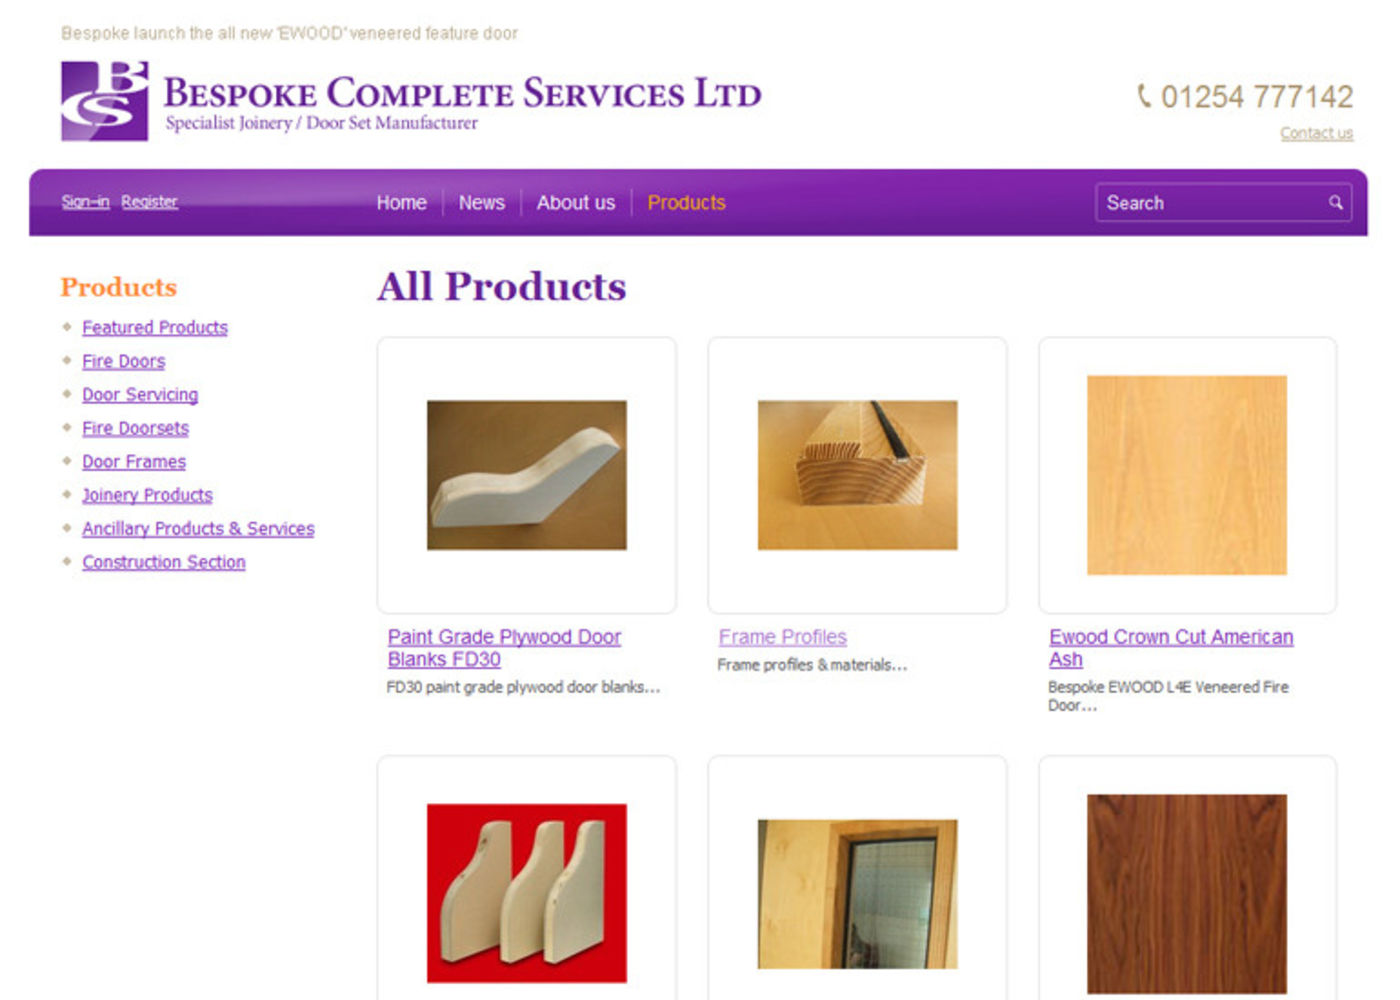 Bespoke Complete Services Ltd Products